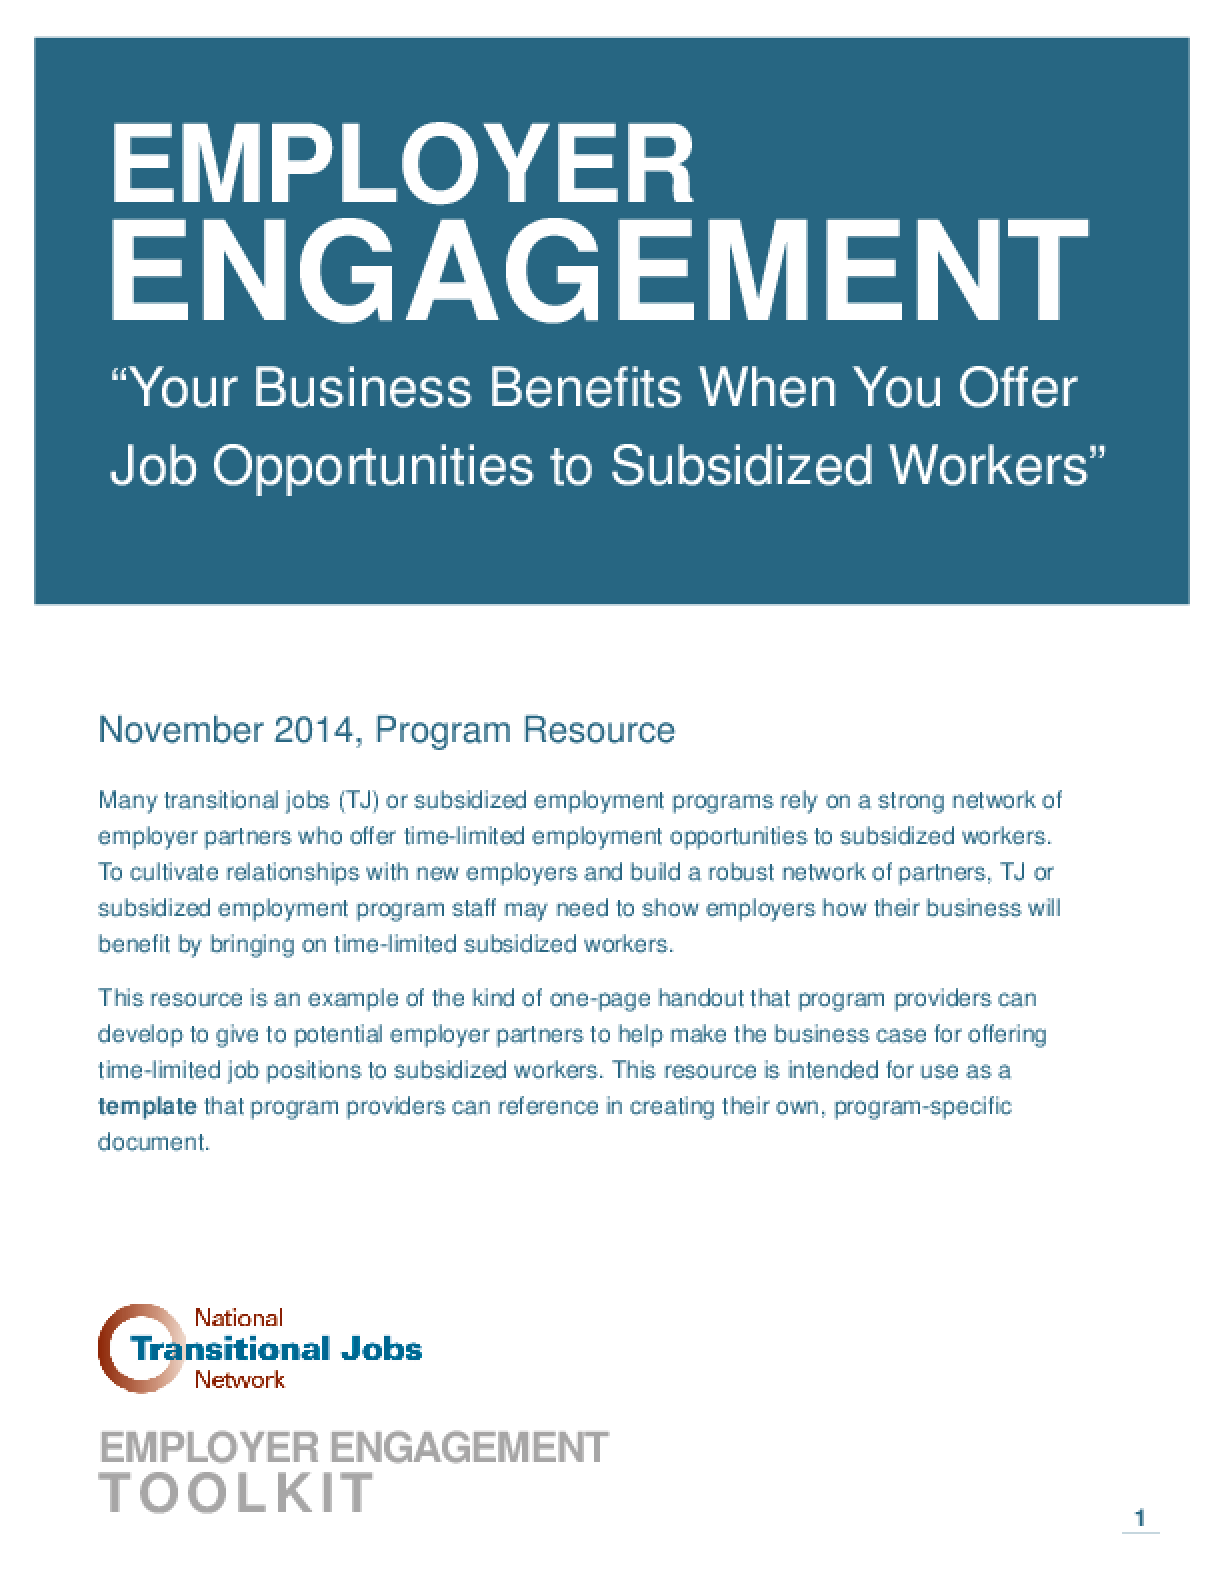 Employer Engagement: Your Business Benefits When You Offer Job Opportunities to Subsidized Workers